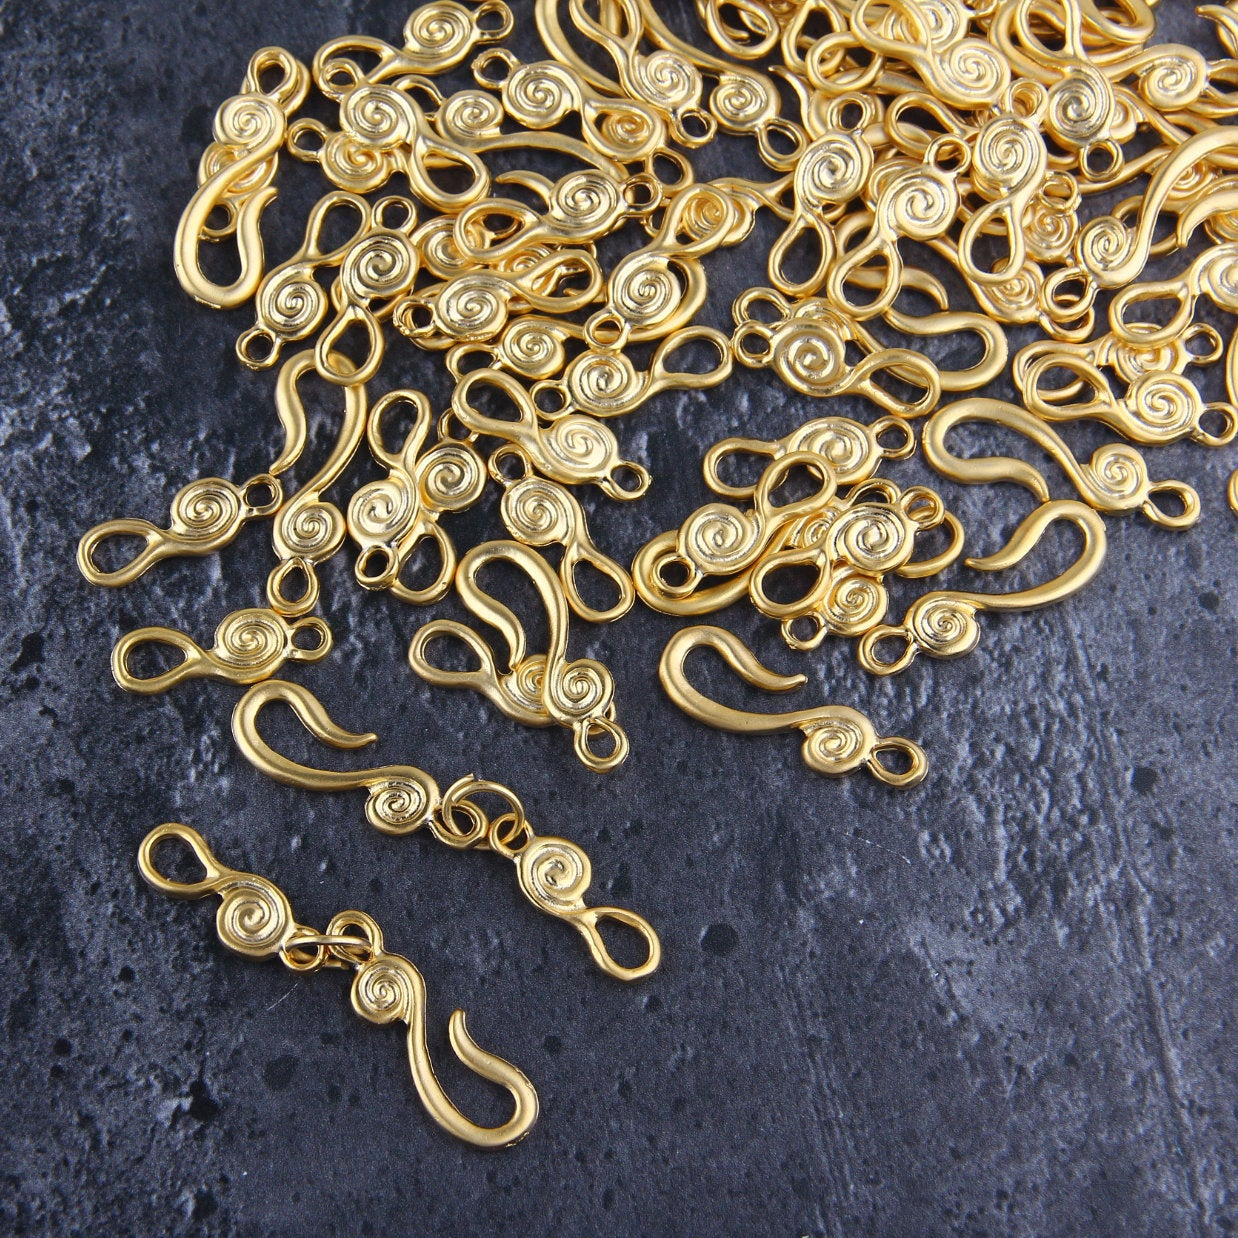 Hook and Eye Clasps, Gold Hook Clasps, Clasp Findings, Gold Hook and Eye, 2 sets, 9x52mm // GF-197